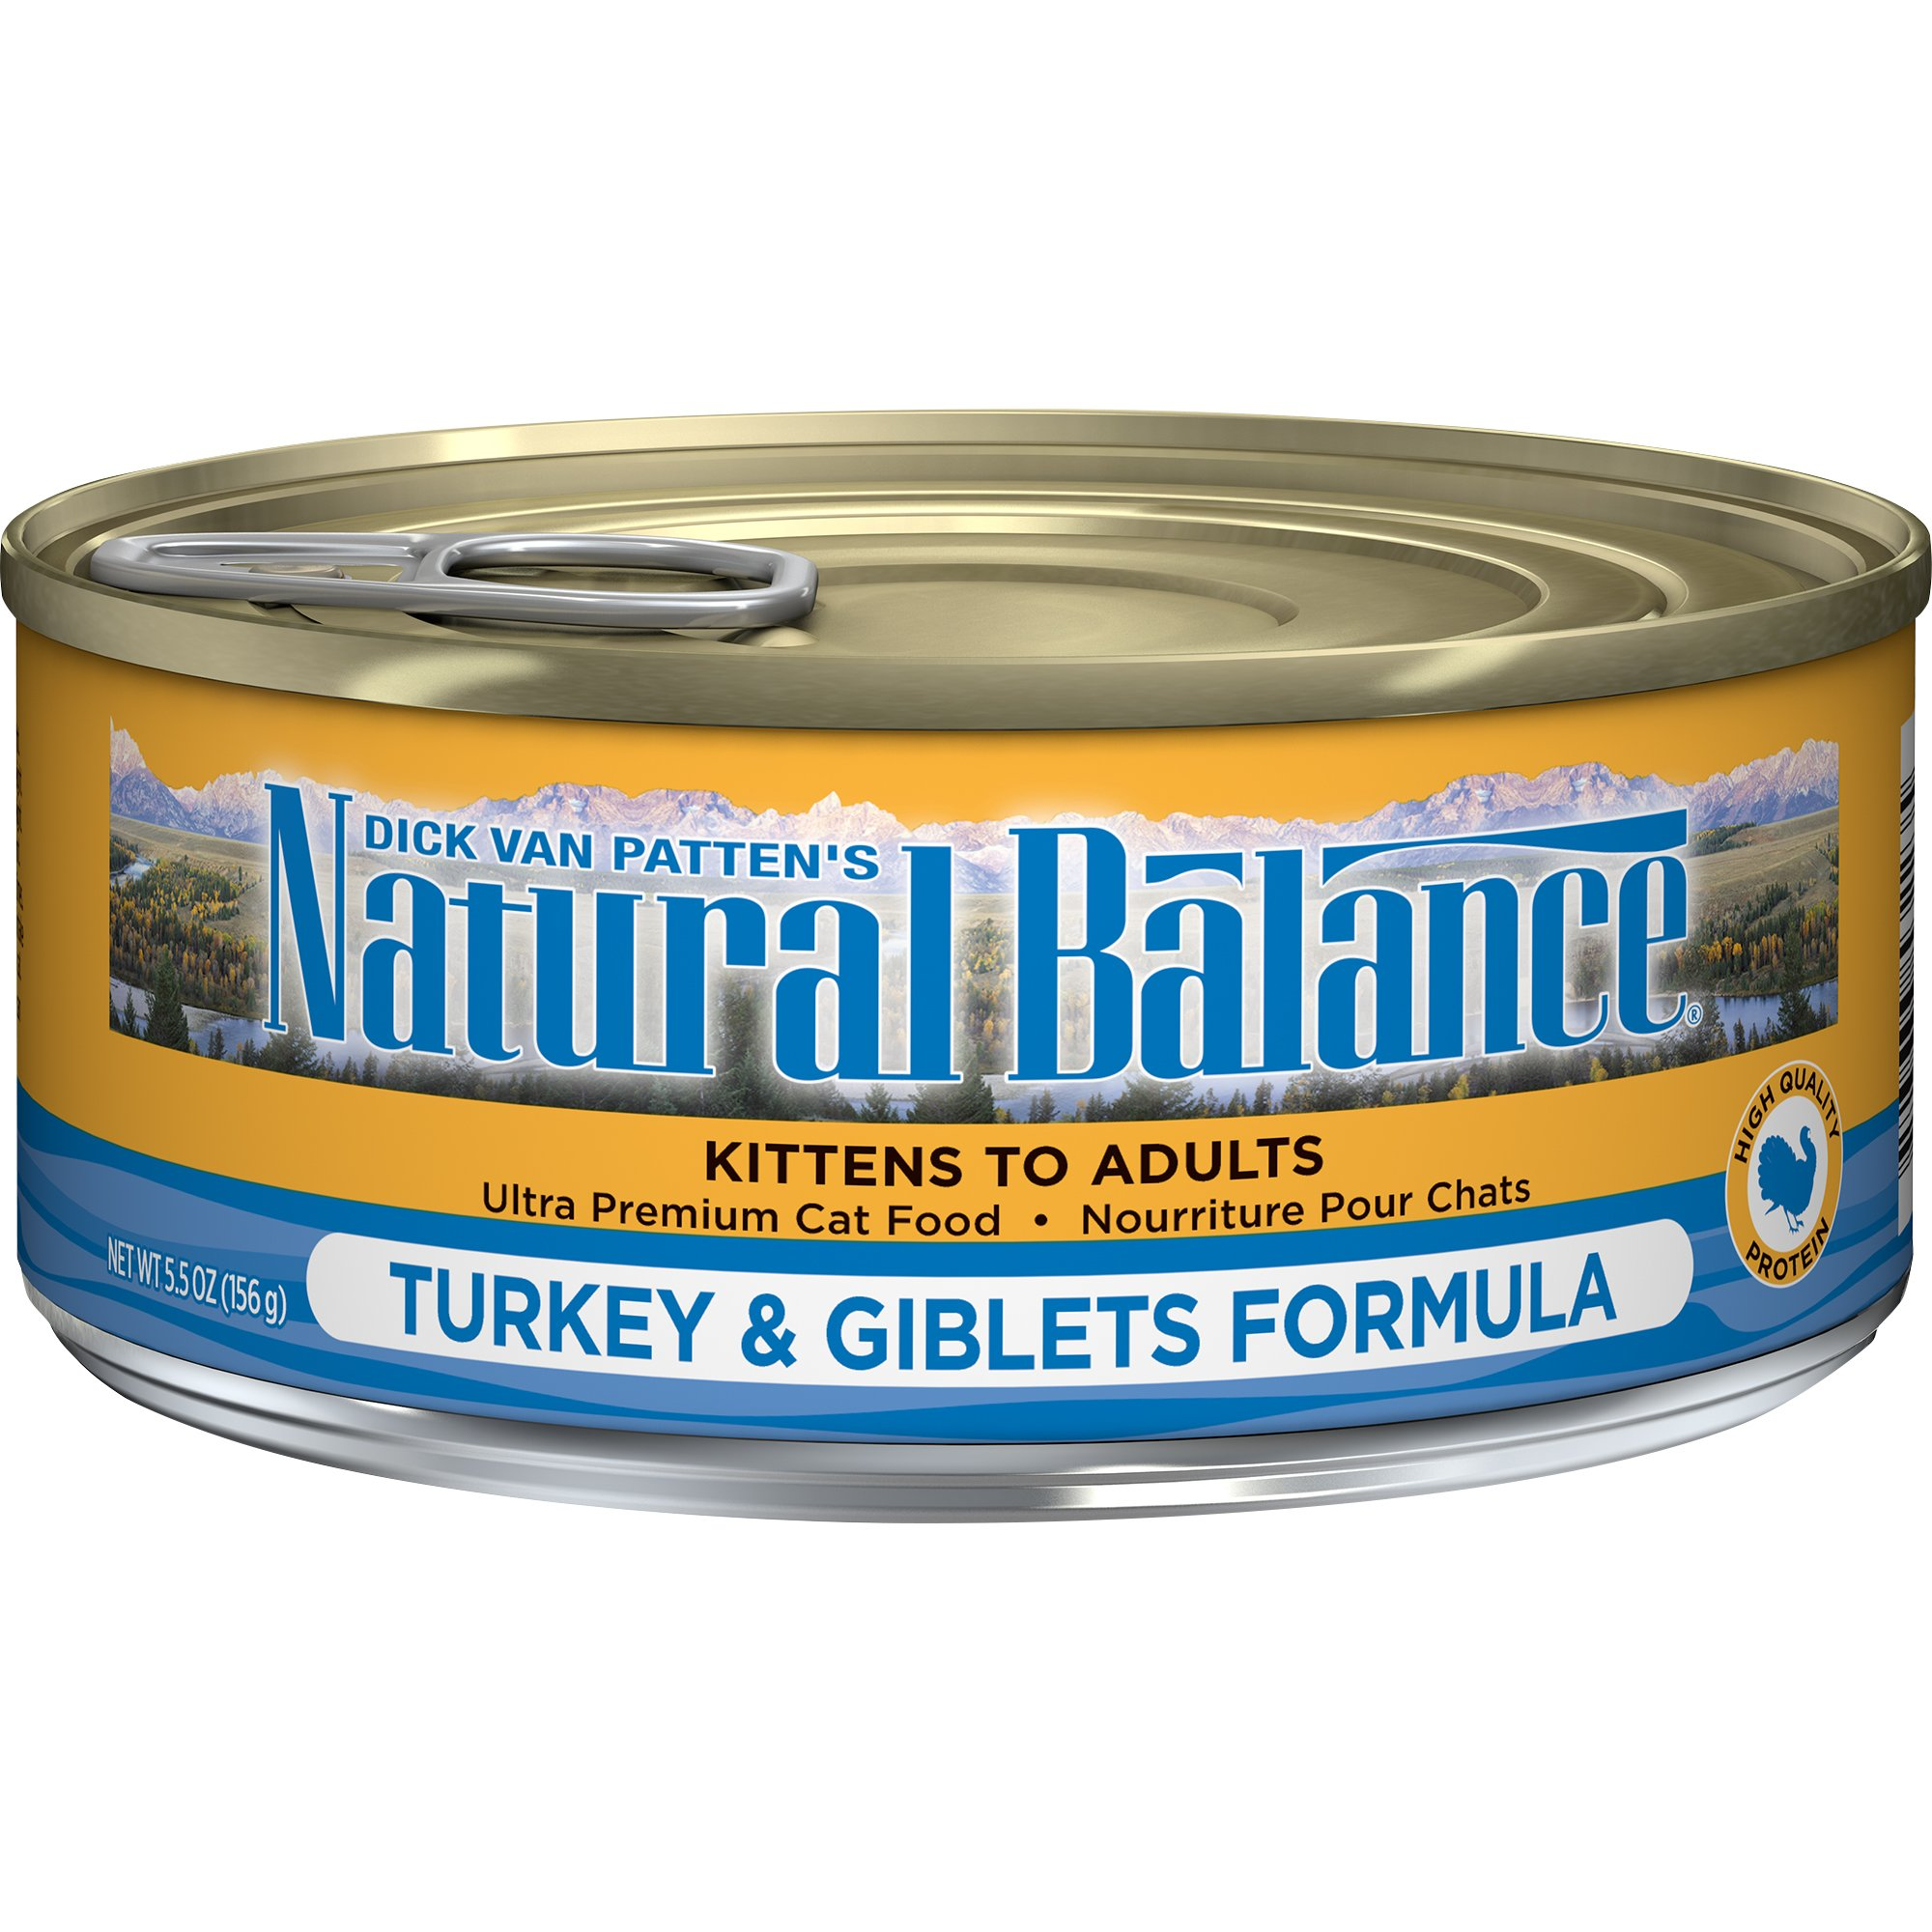 Natural Balance Turkey & Giblets Formula Wet Cat Food, 5.5-Ounce Can (Pack Of 24) by Natural Balance (Image #1)